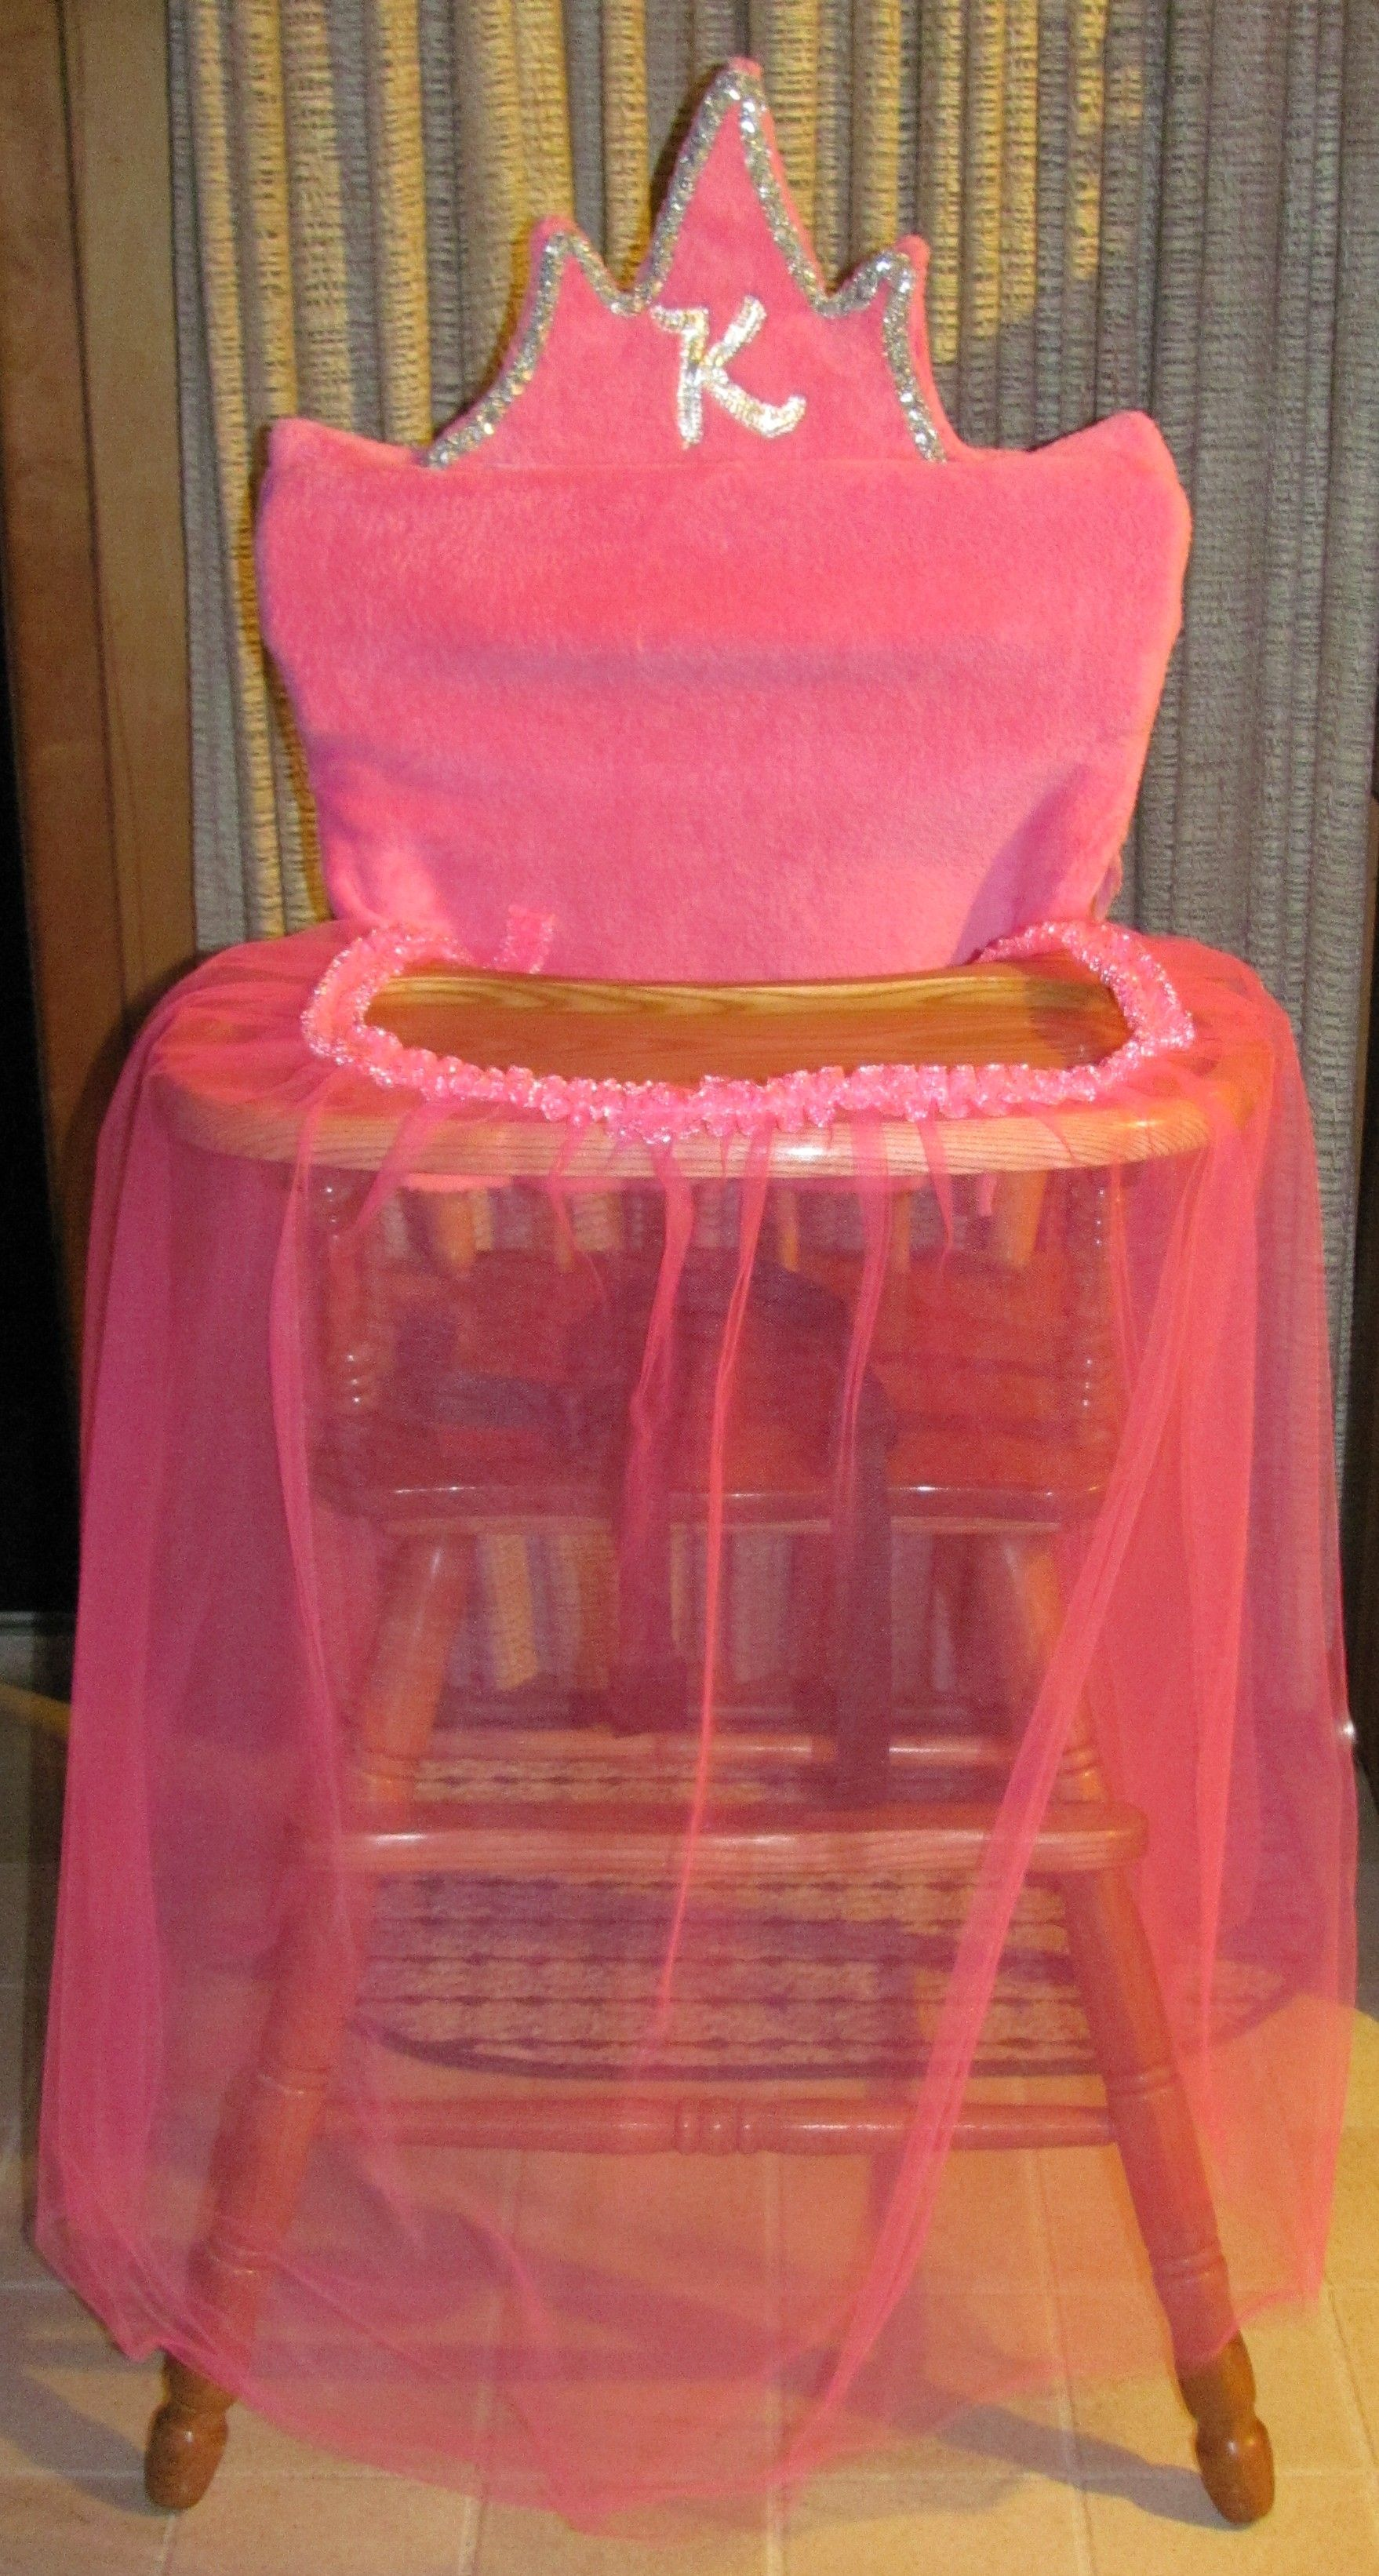 Princess throne chair - Every Princess Needs A Throne Here S A Great Idea For The High Chair She Uses